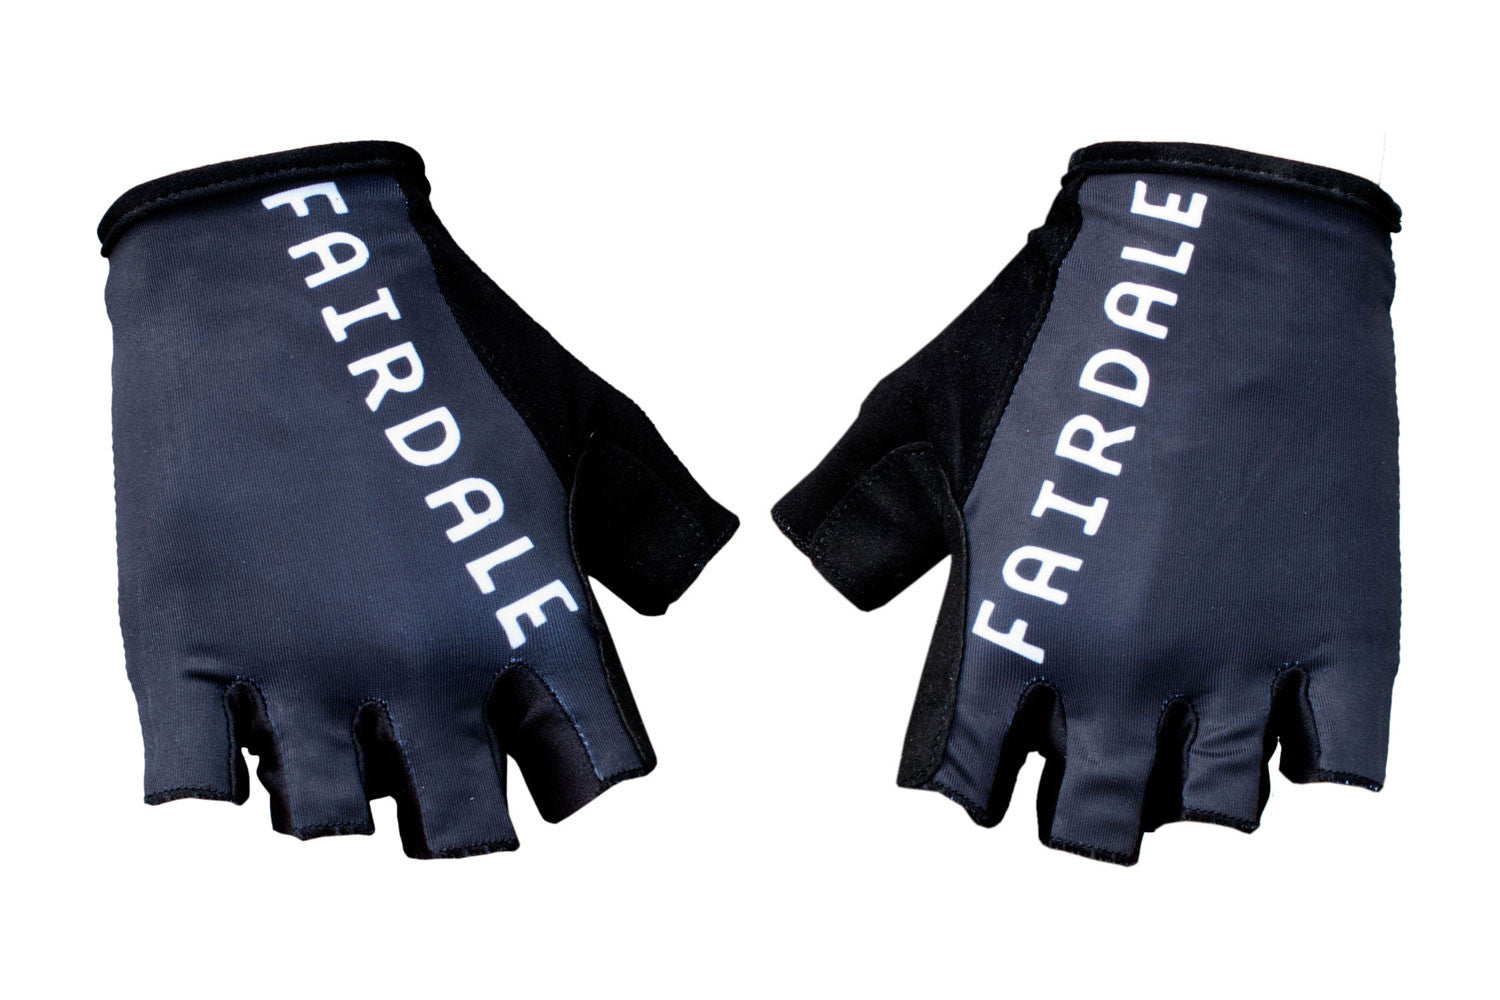 NEW! Fairdale Cycling (Team) Gloves - by Castelli